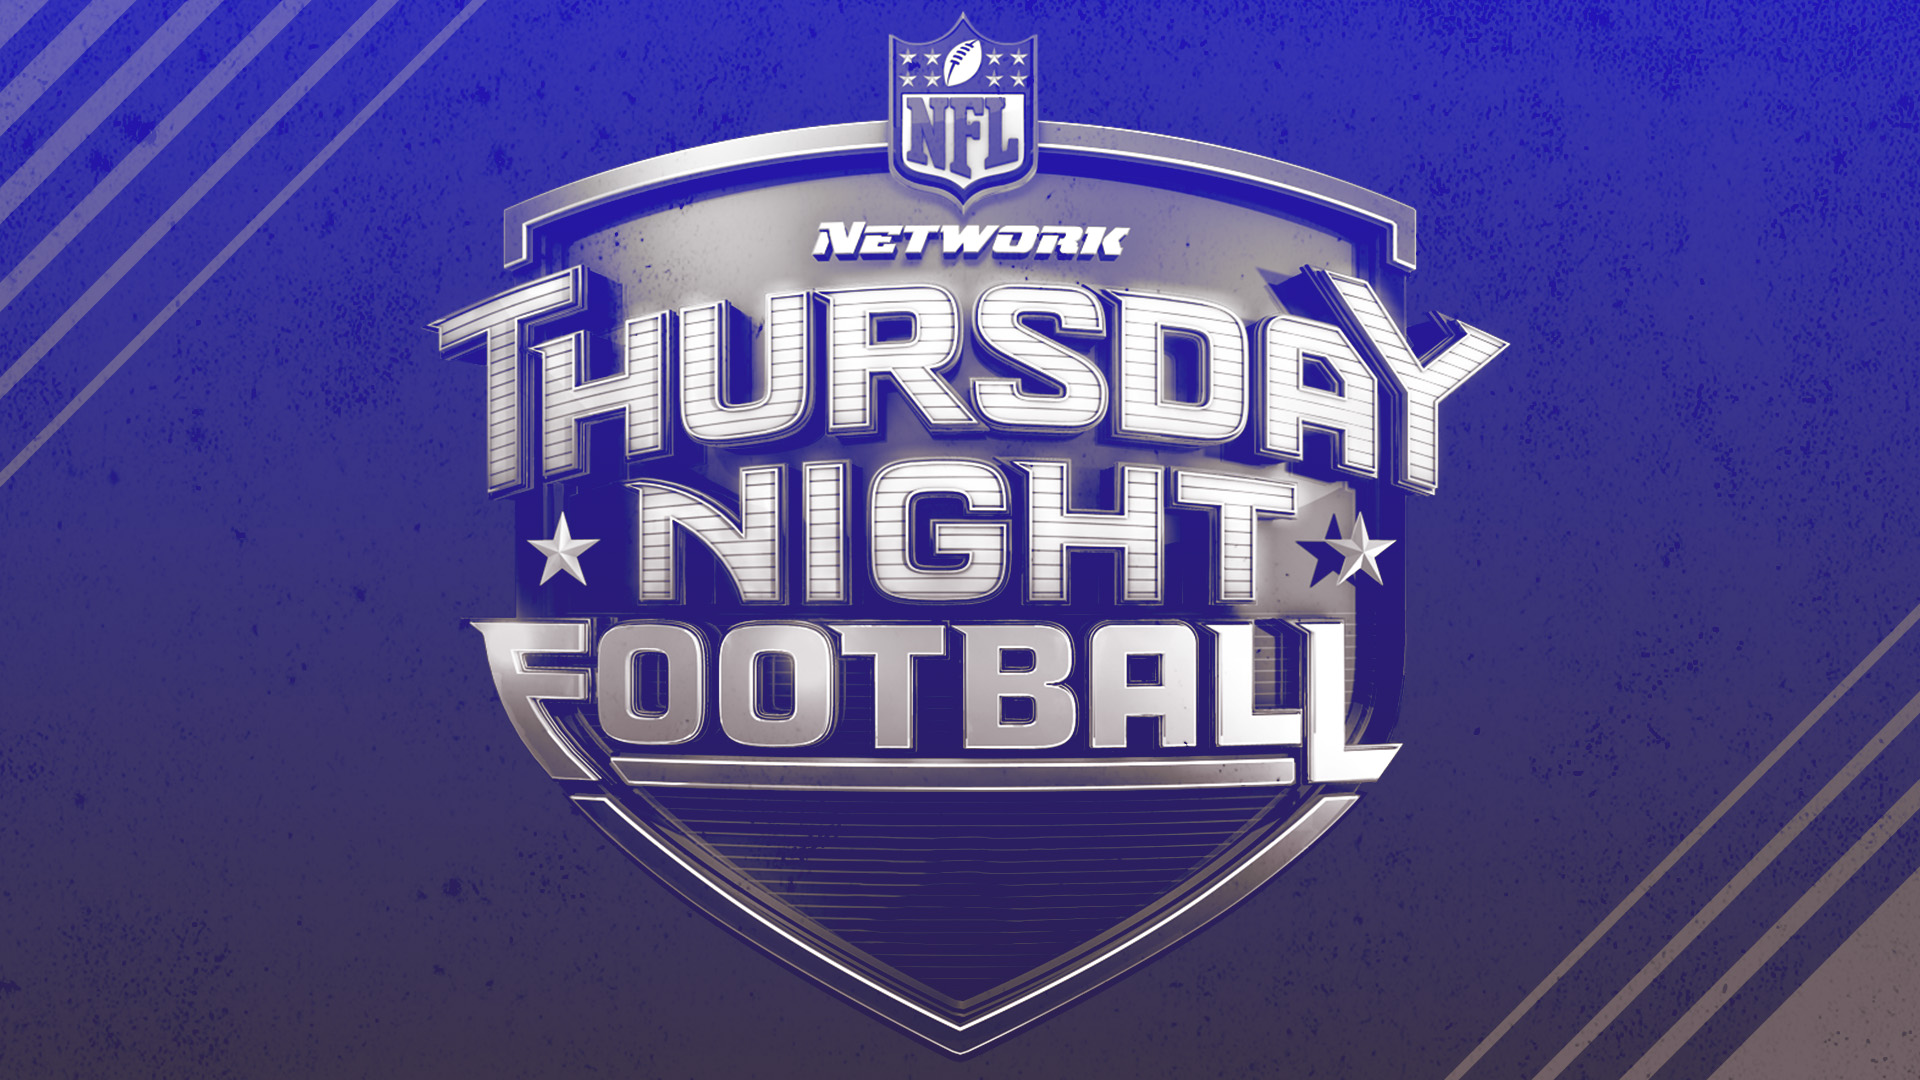 Thursday-night-football-tnf-092117-ftr_ymaq5dj5d5db1j6j5mm1p0vss